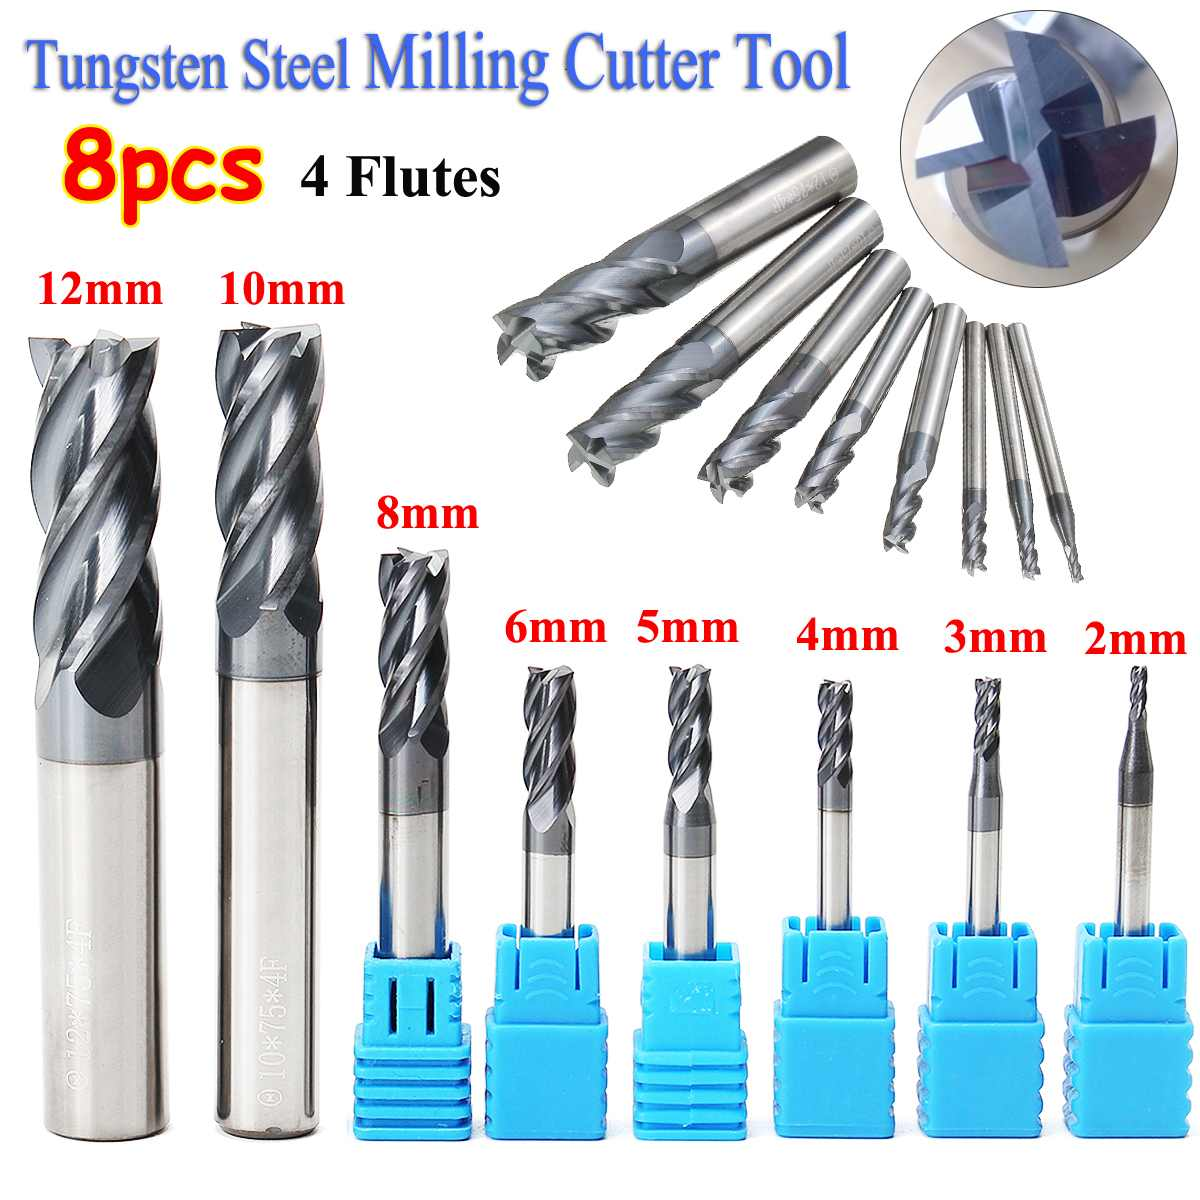 8pcs 2-12mm Carbide End Mill 4 Flutes Set Tungsten Steel Milling Cutter Tool